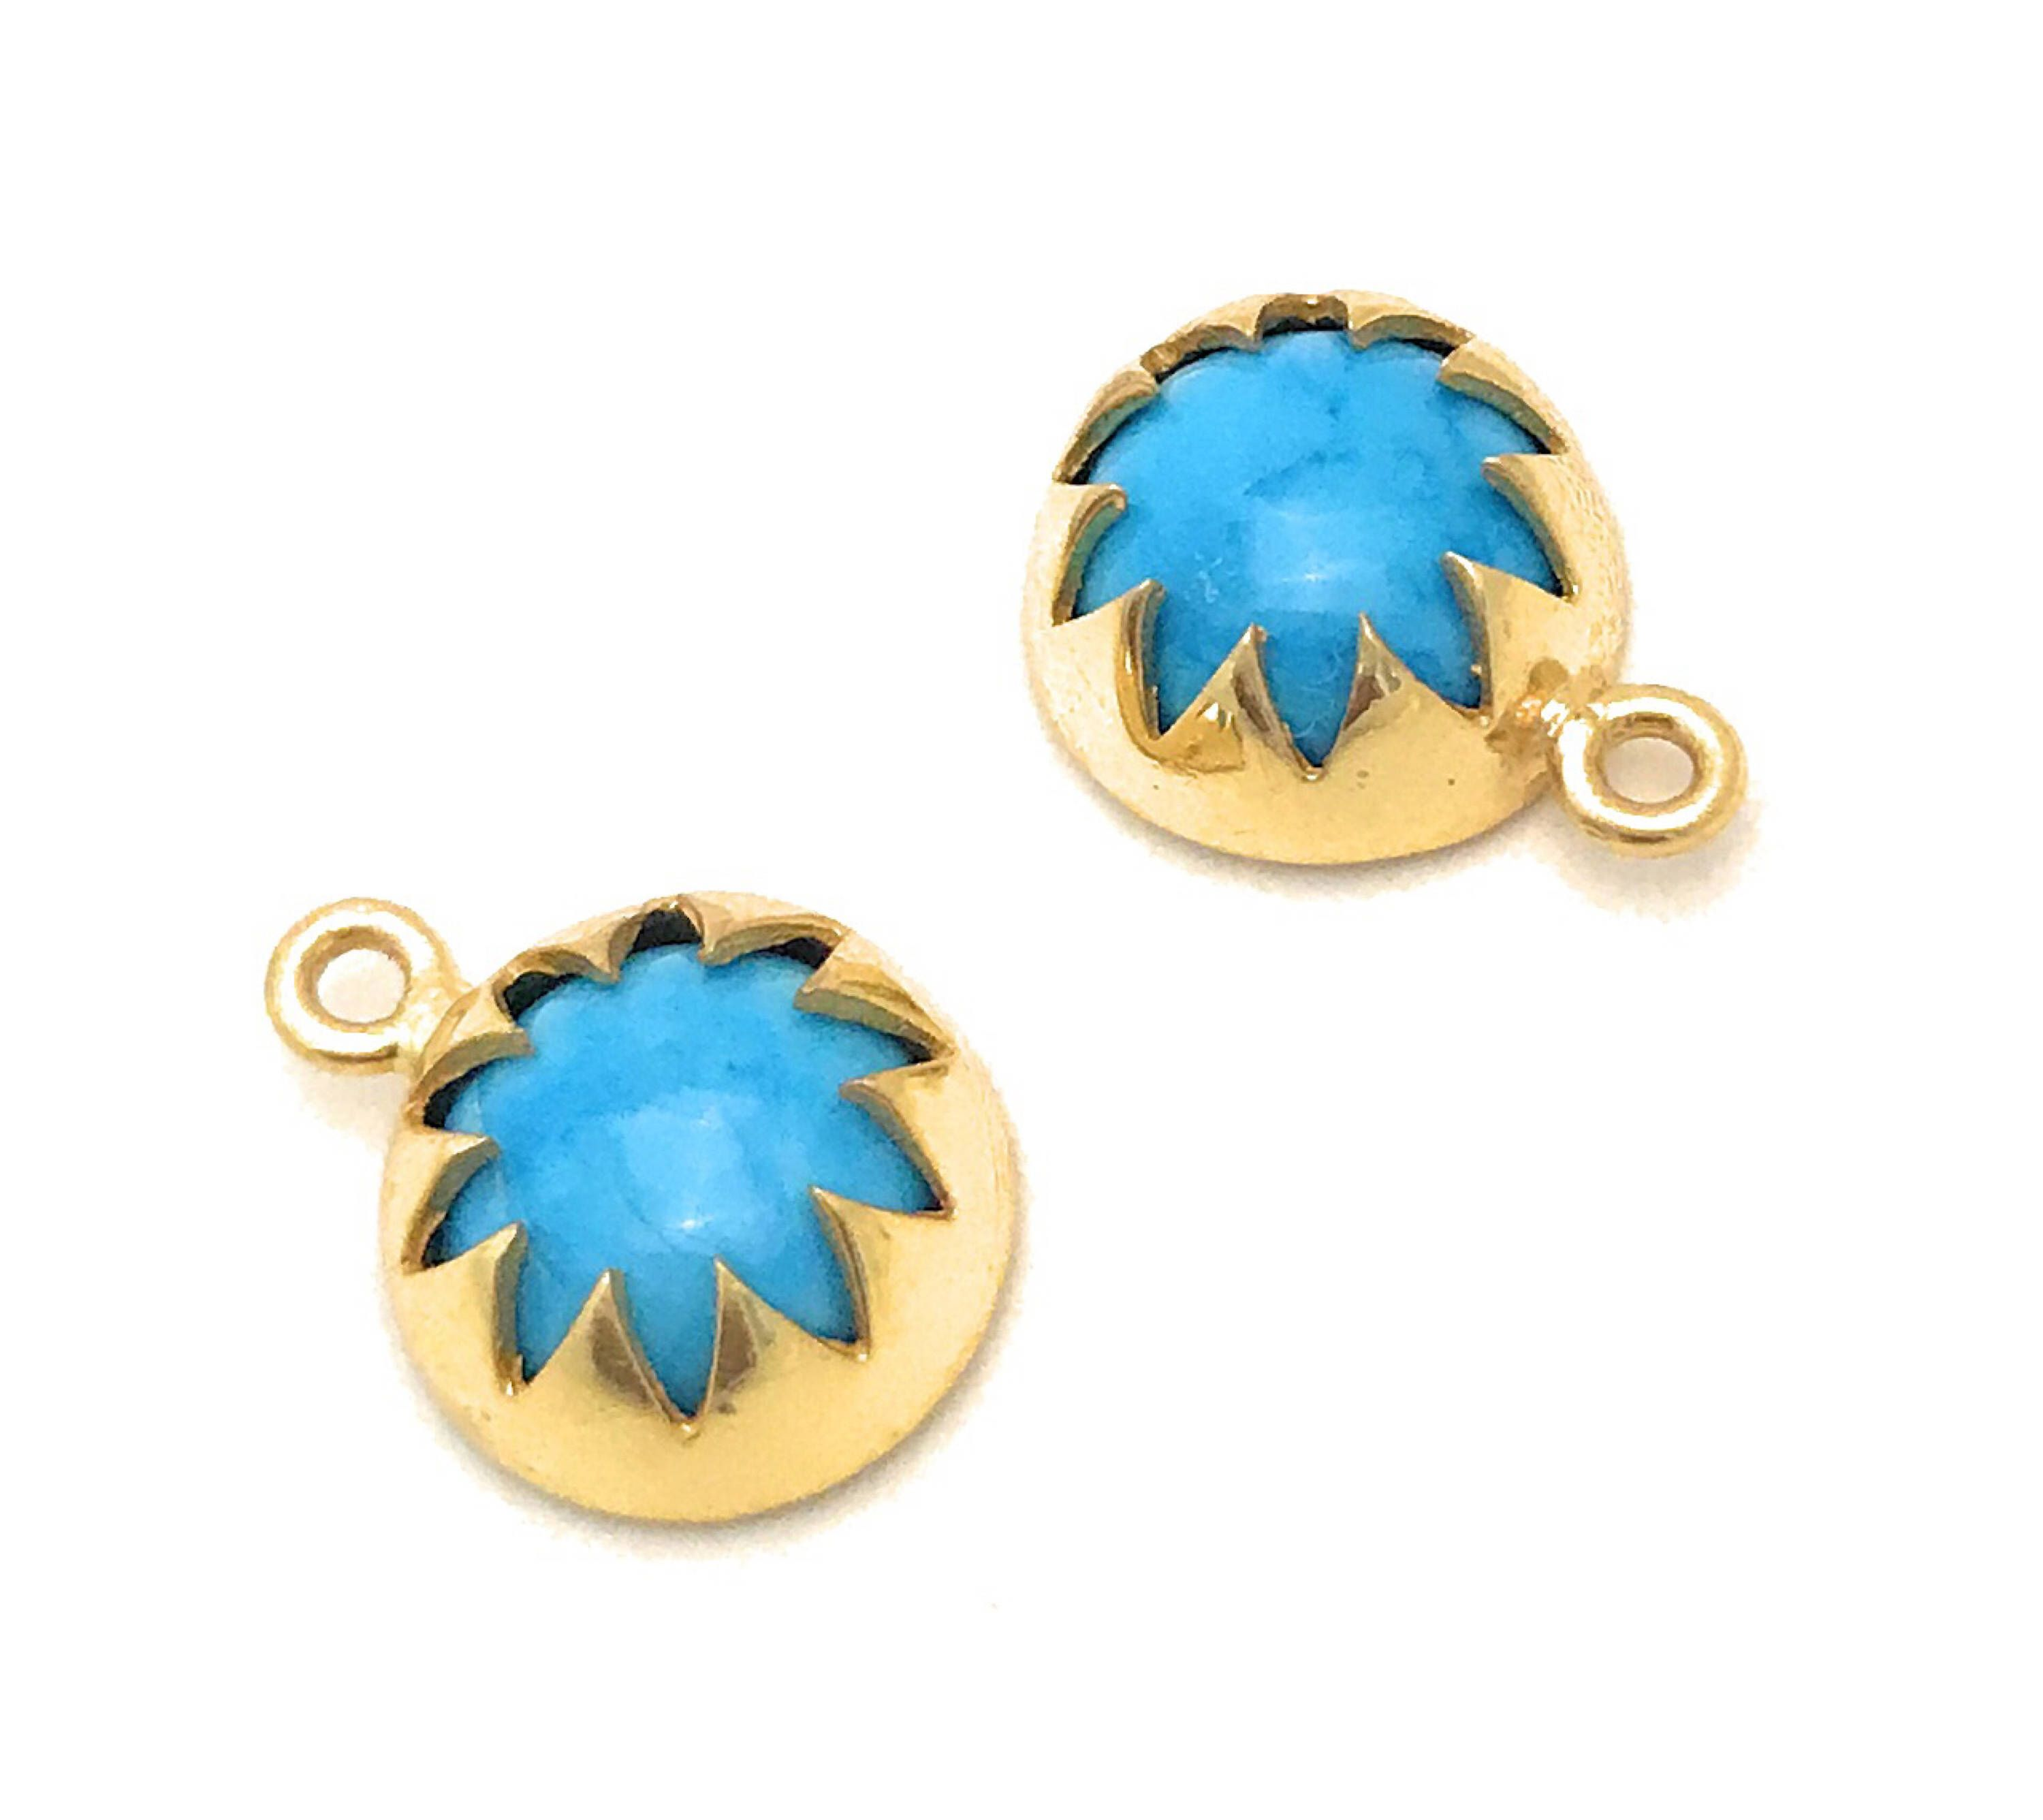 Excited to share the latest addition to my #etsy shop: Turquoise Charms, Gemstone Charms, Gold plated Charms, Bracelet Charms, Jewelry Supplies, Wholesale Charms, Circle Charms, 15.5x12mm 1 Pc